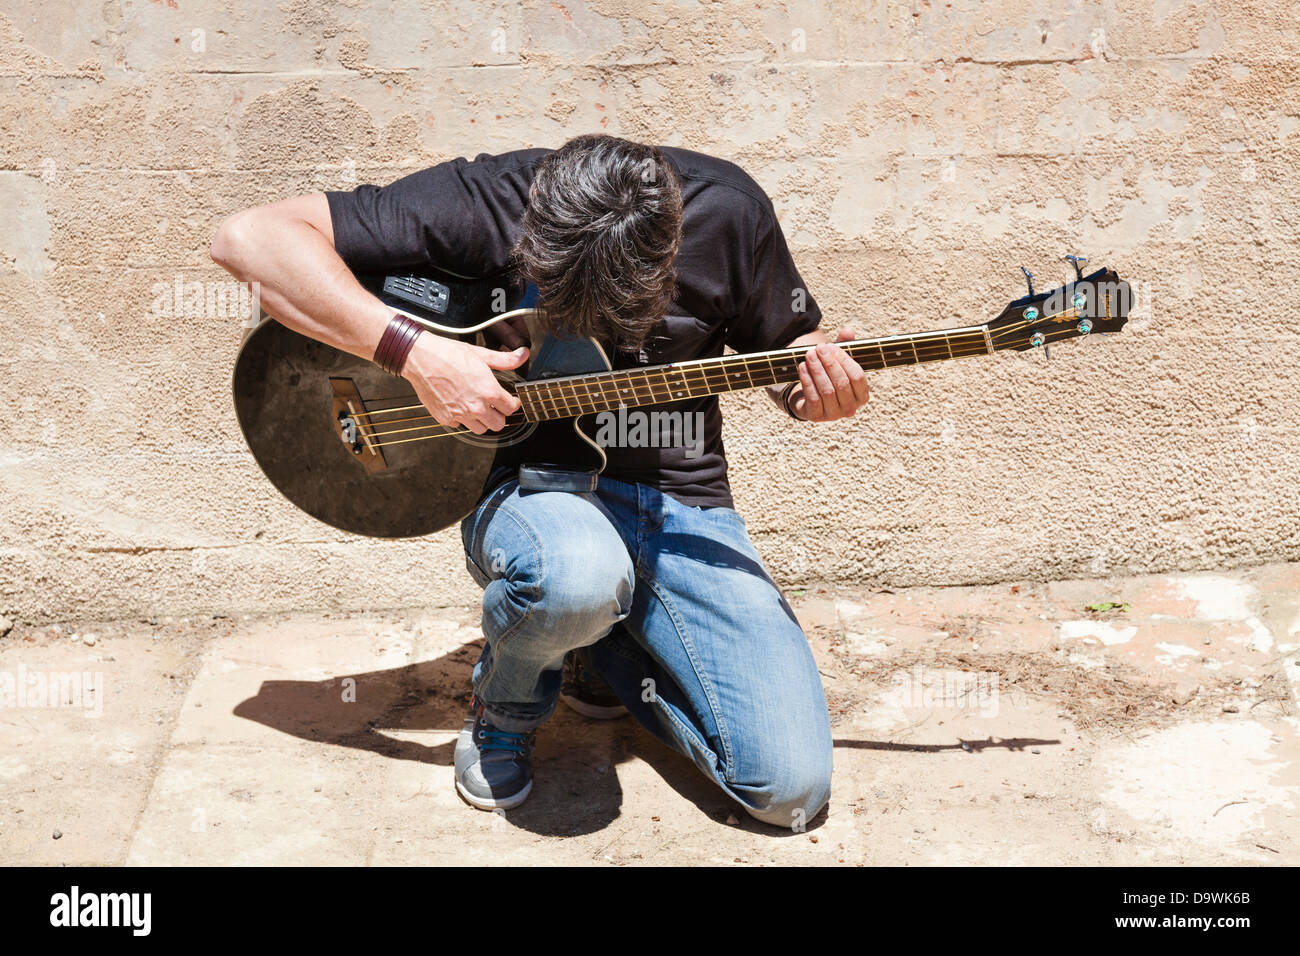 young man playing acoustic guitar kneeling outside - Stock Image